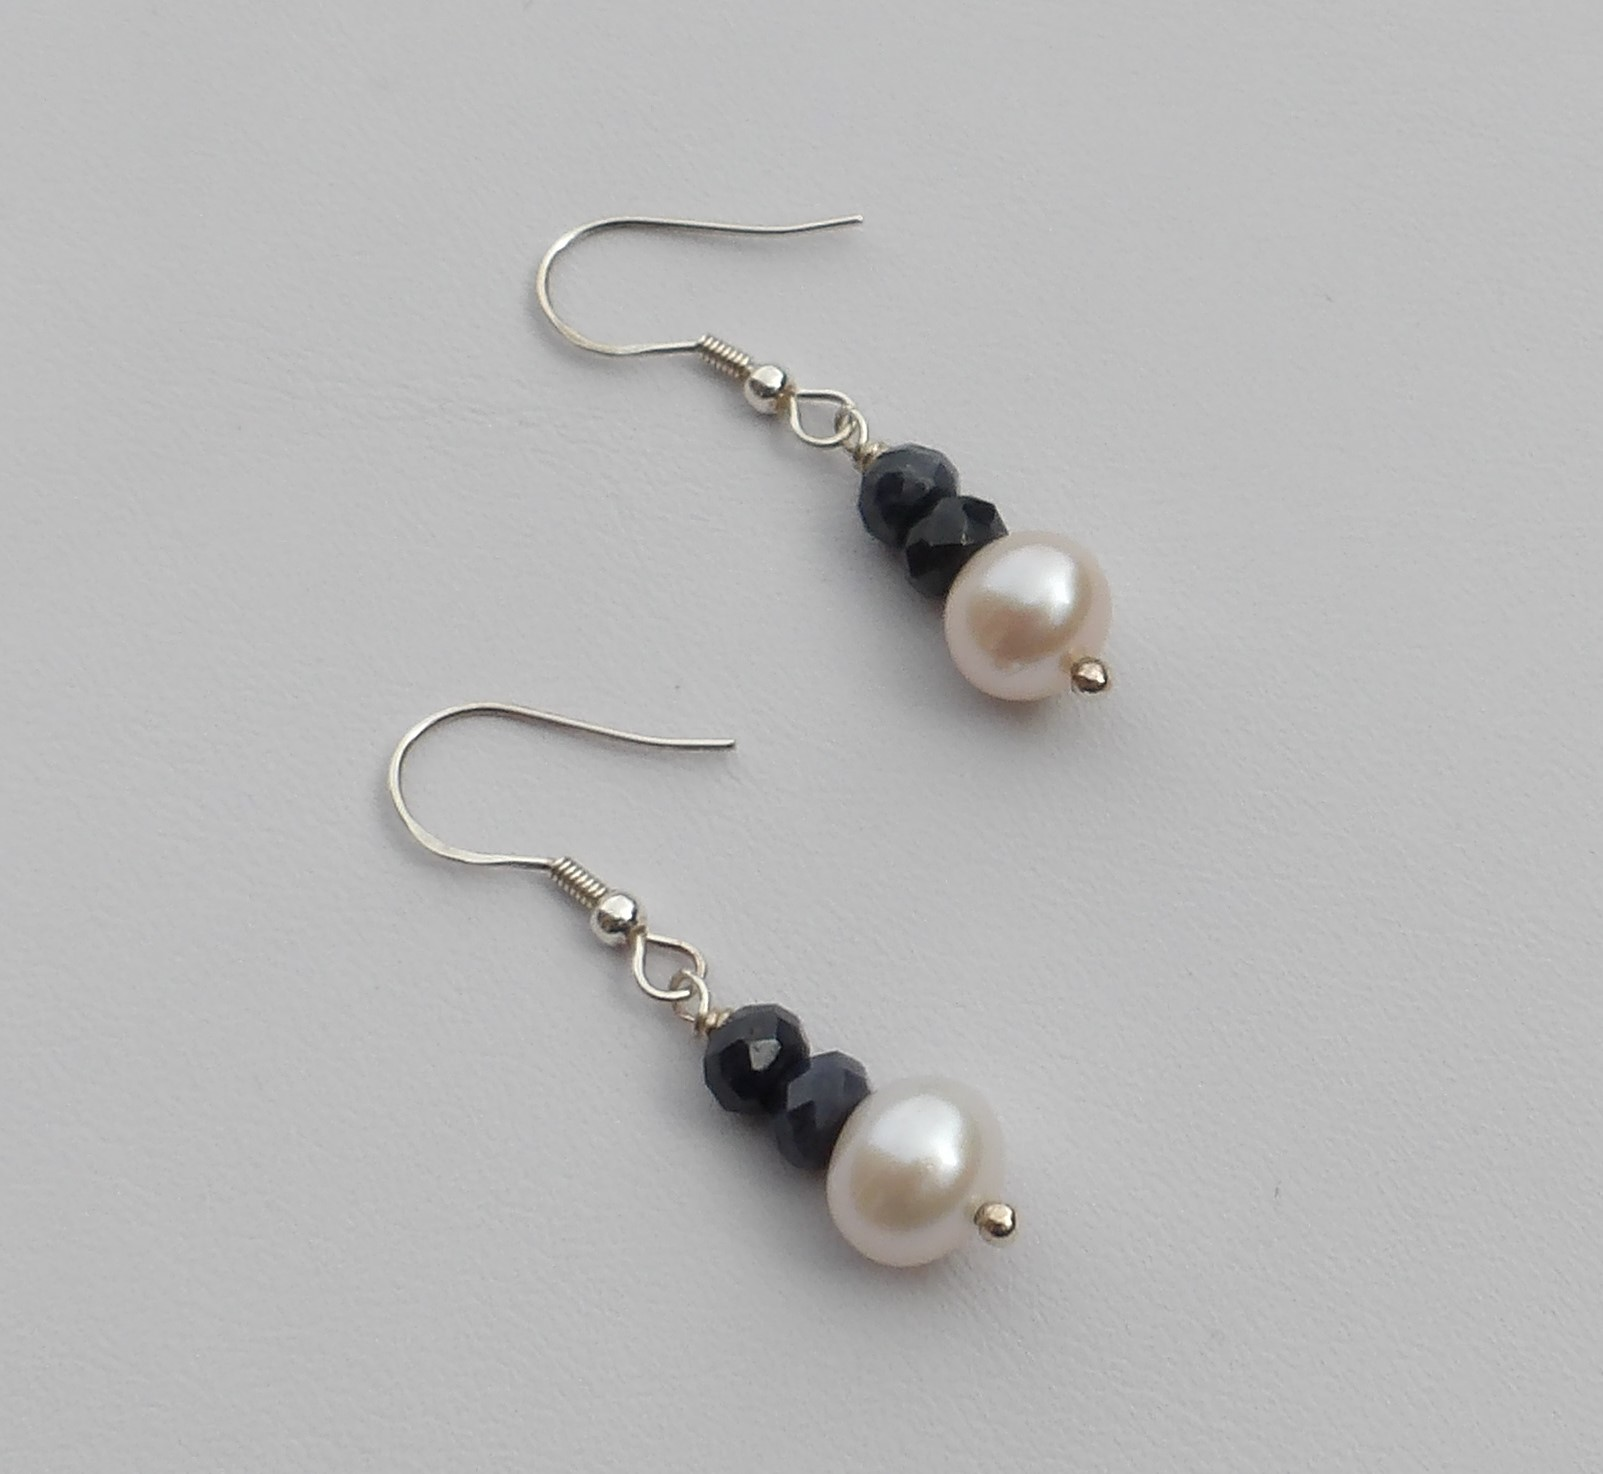 urchin gogo manufacturing sea pearl earrings clear jewelry cz single schaler medium